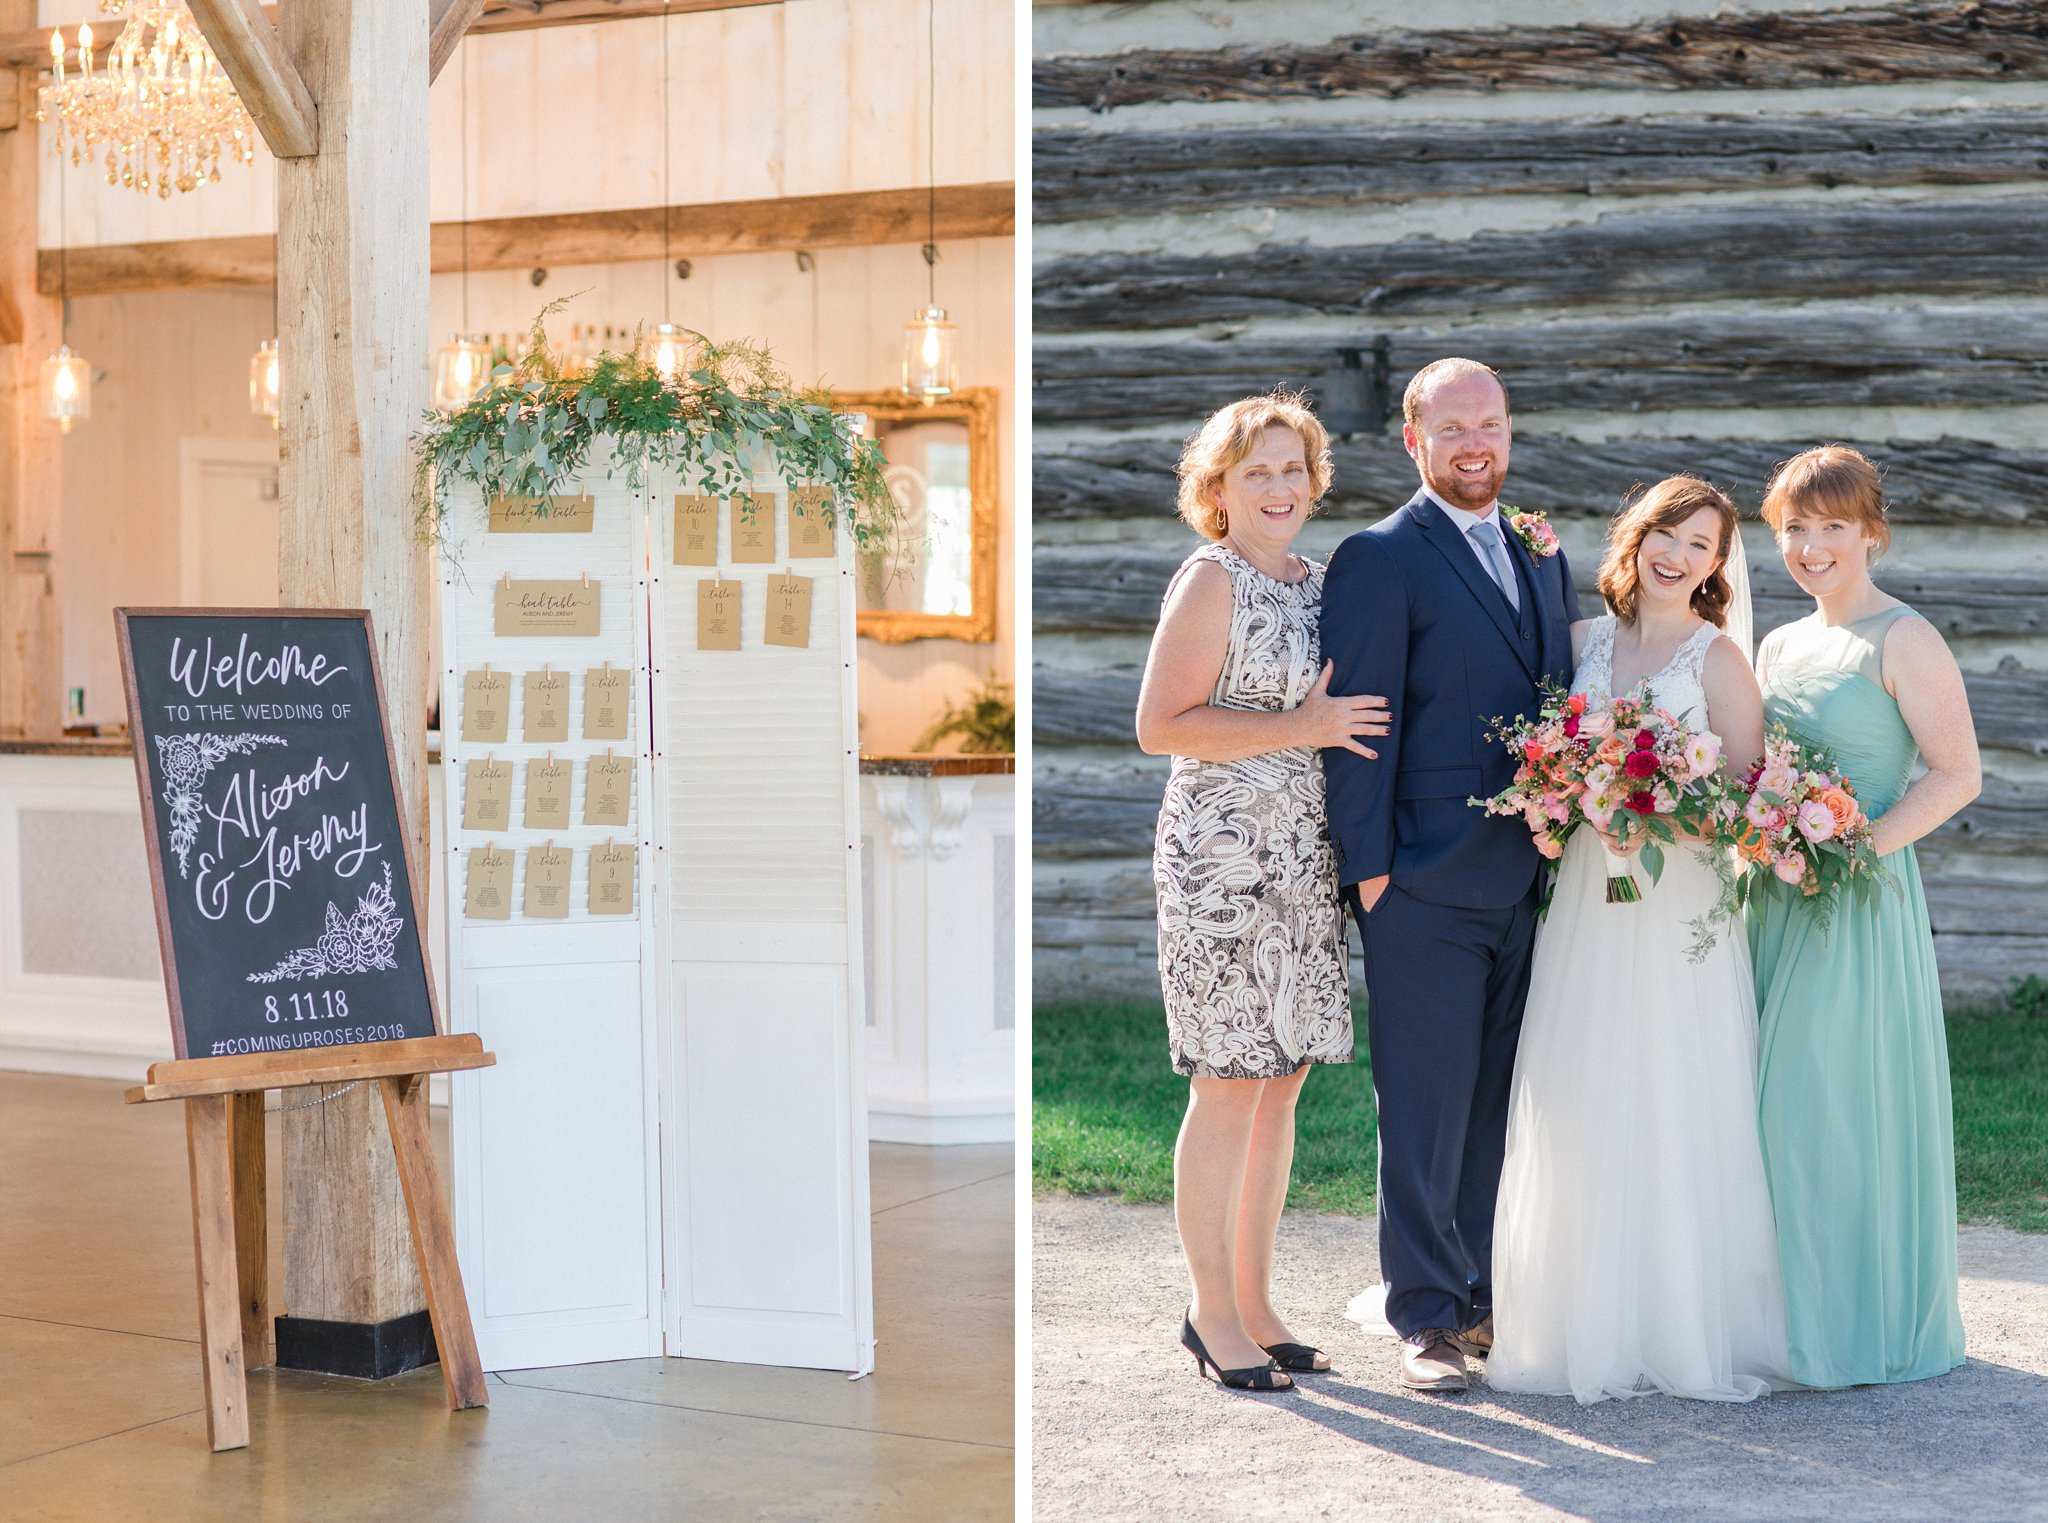 Calligraphy seating chart Dog-friendly wedding venue Ottawa Stonefields Amy Pinder Photography